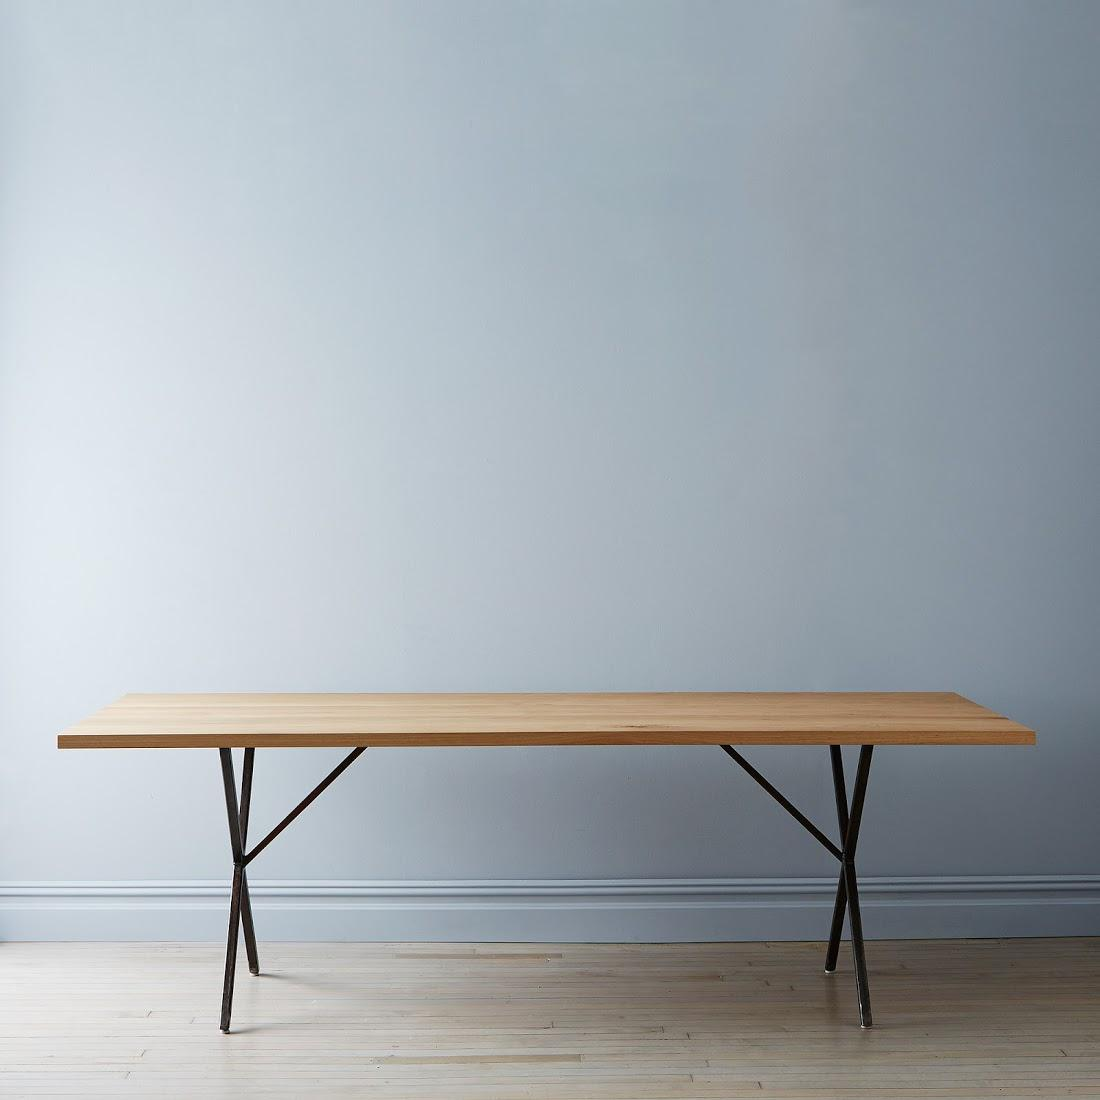 The Best Size and Shape for a Dining Table (& 7 We Love!)